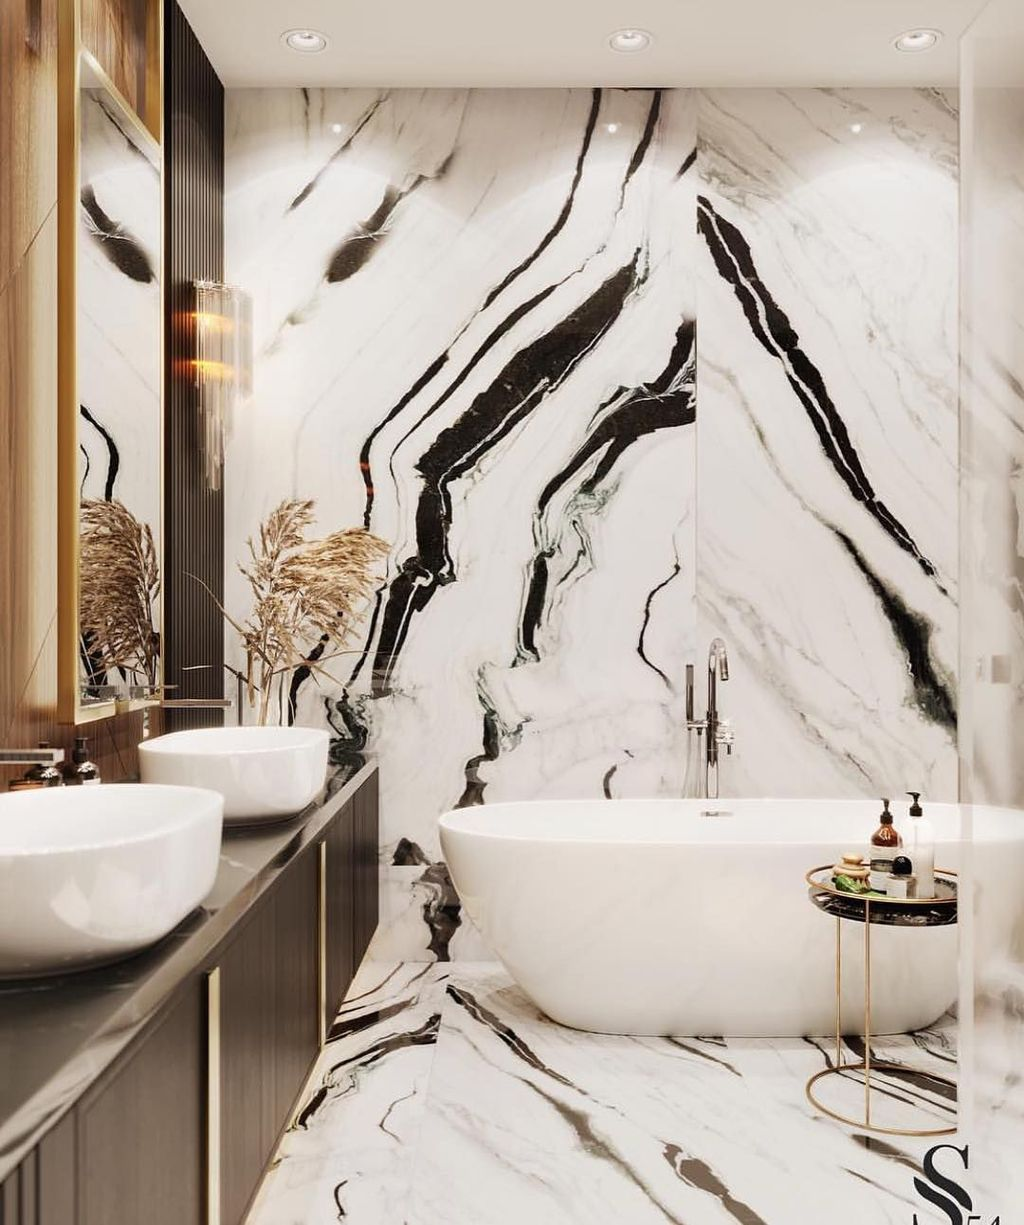 Luxury Bathroom Design And Decor Ideas 09